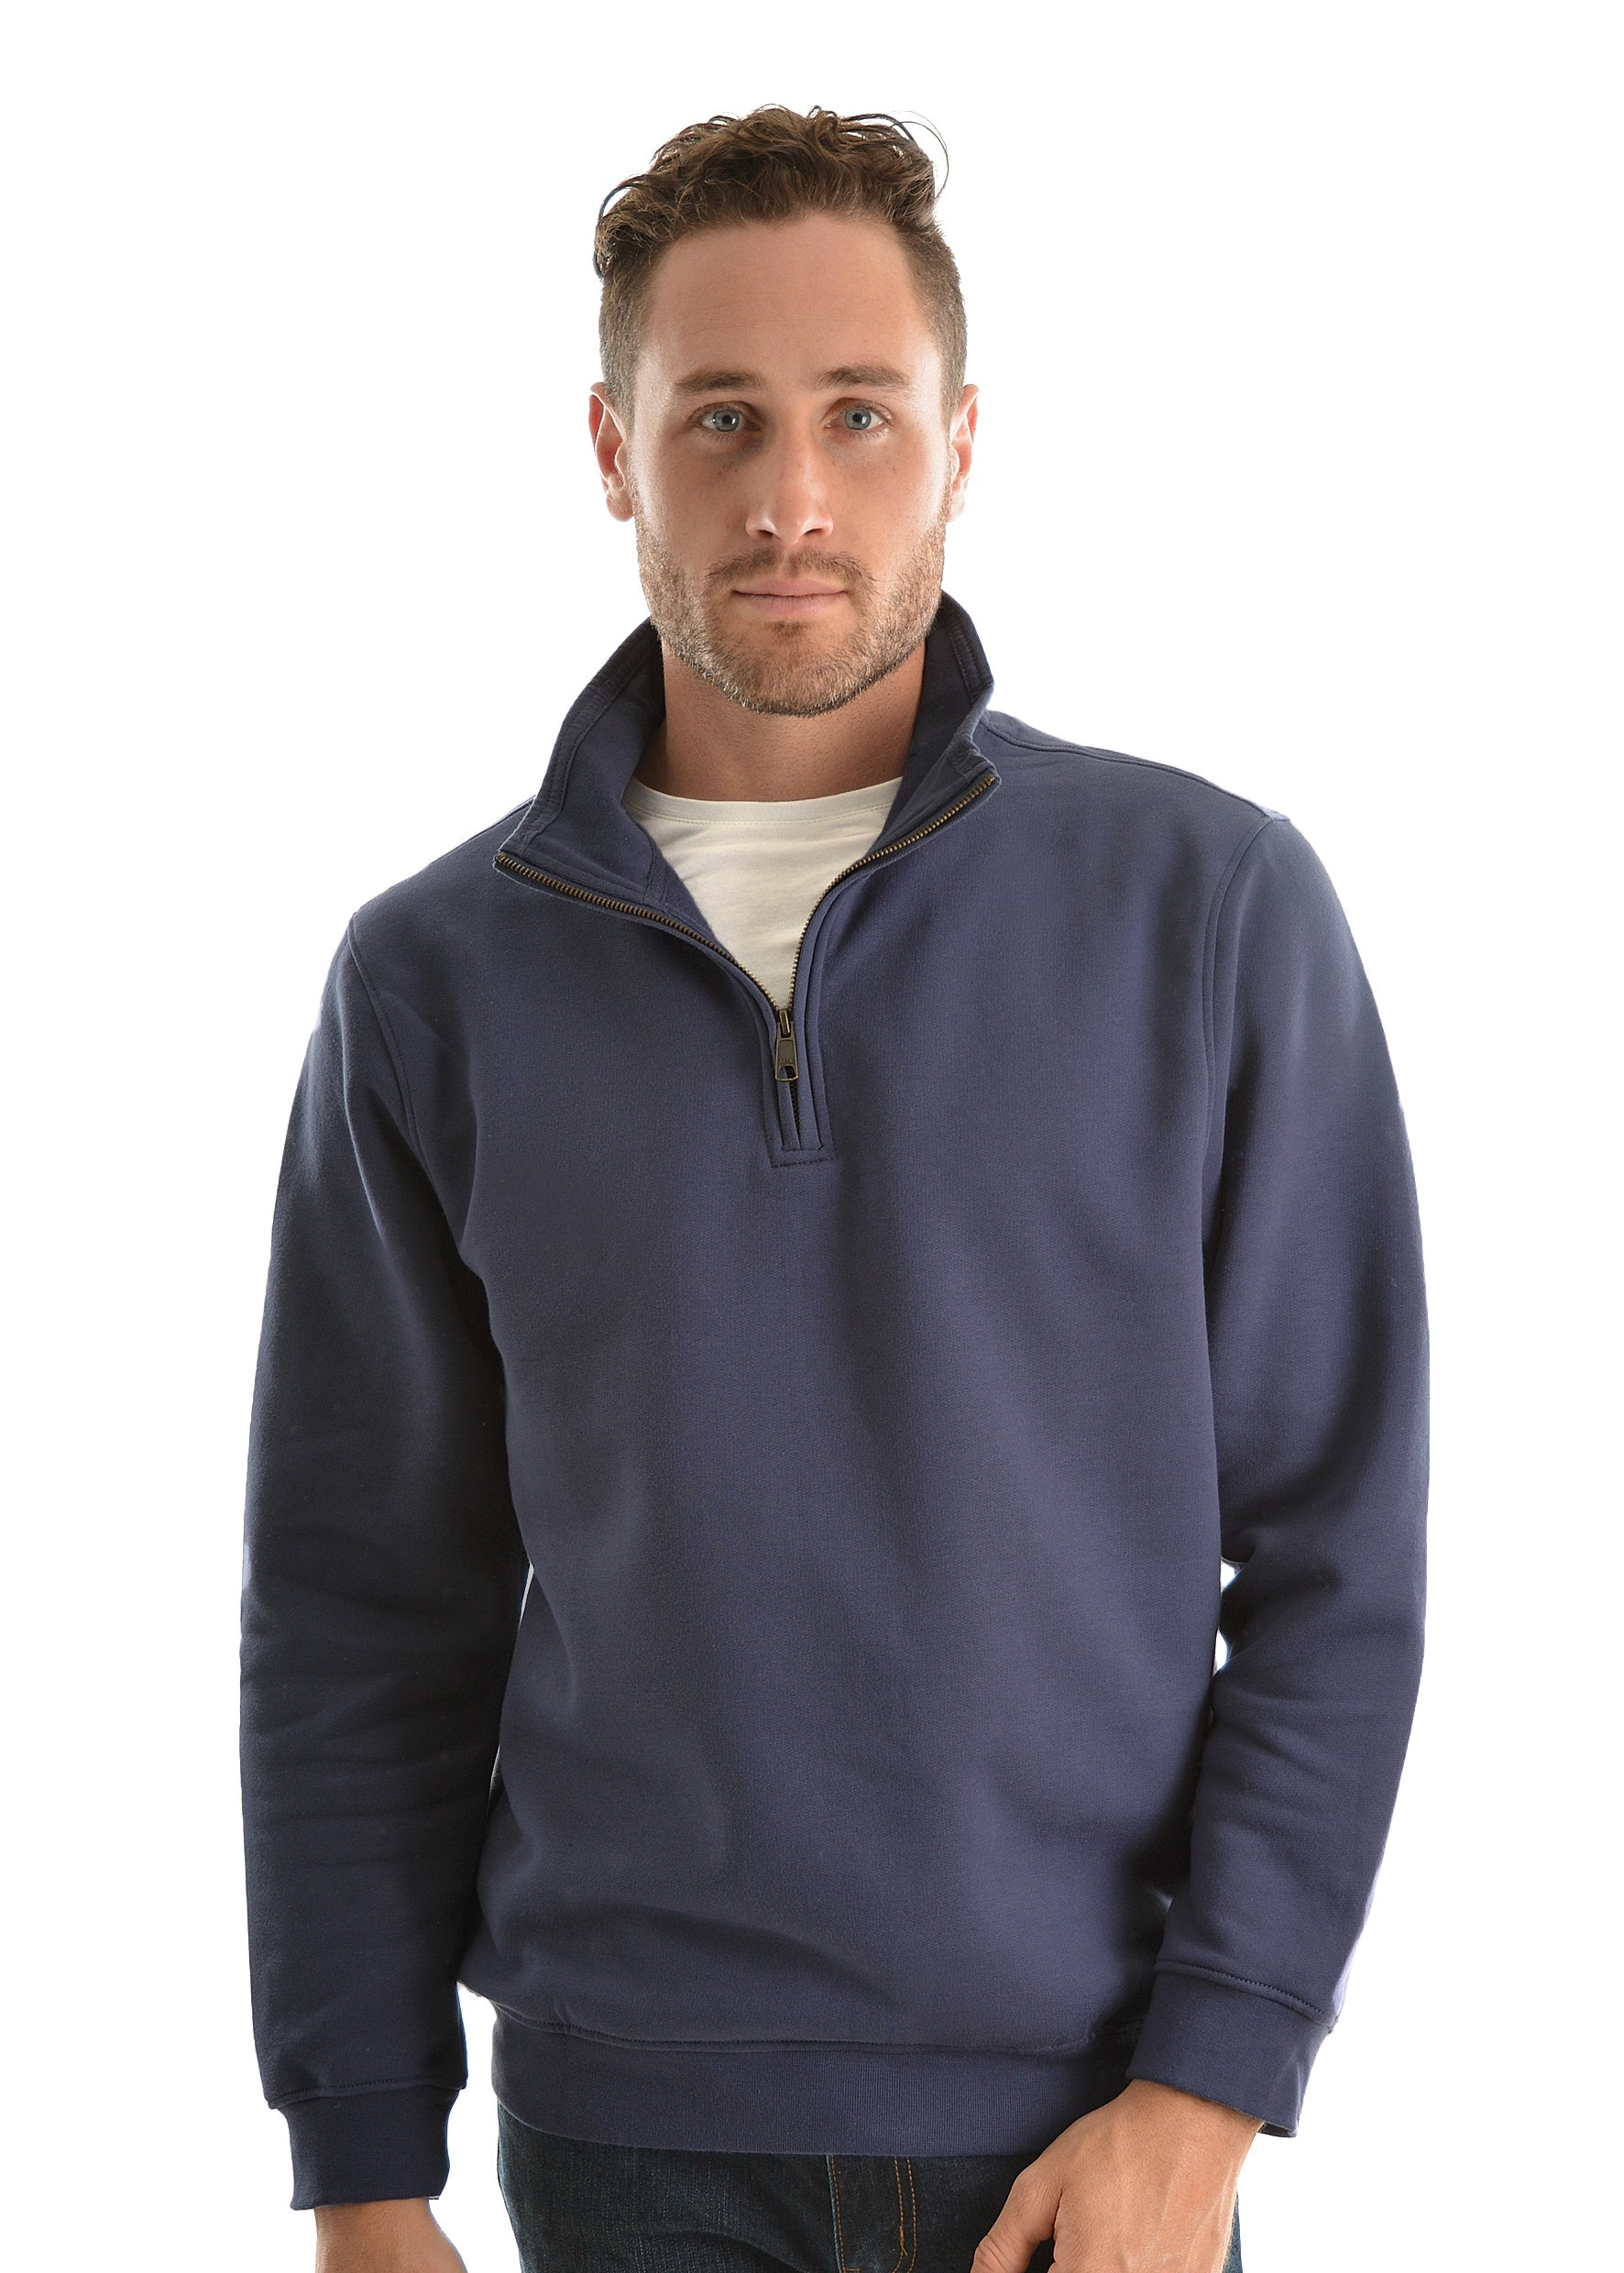 Mens 1/4 Zip Fleece Top (Indigo)